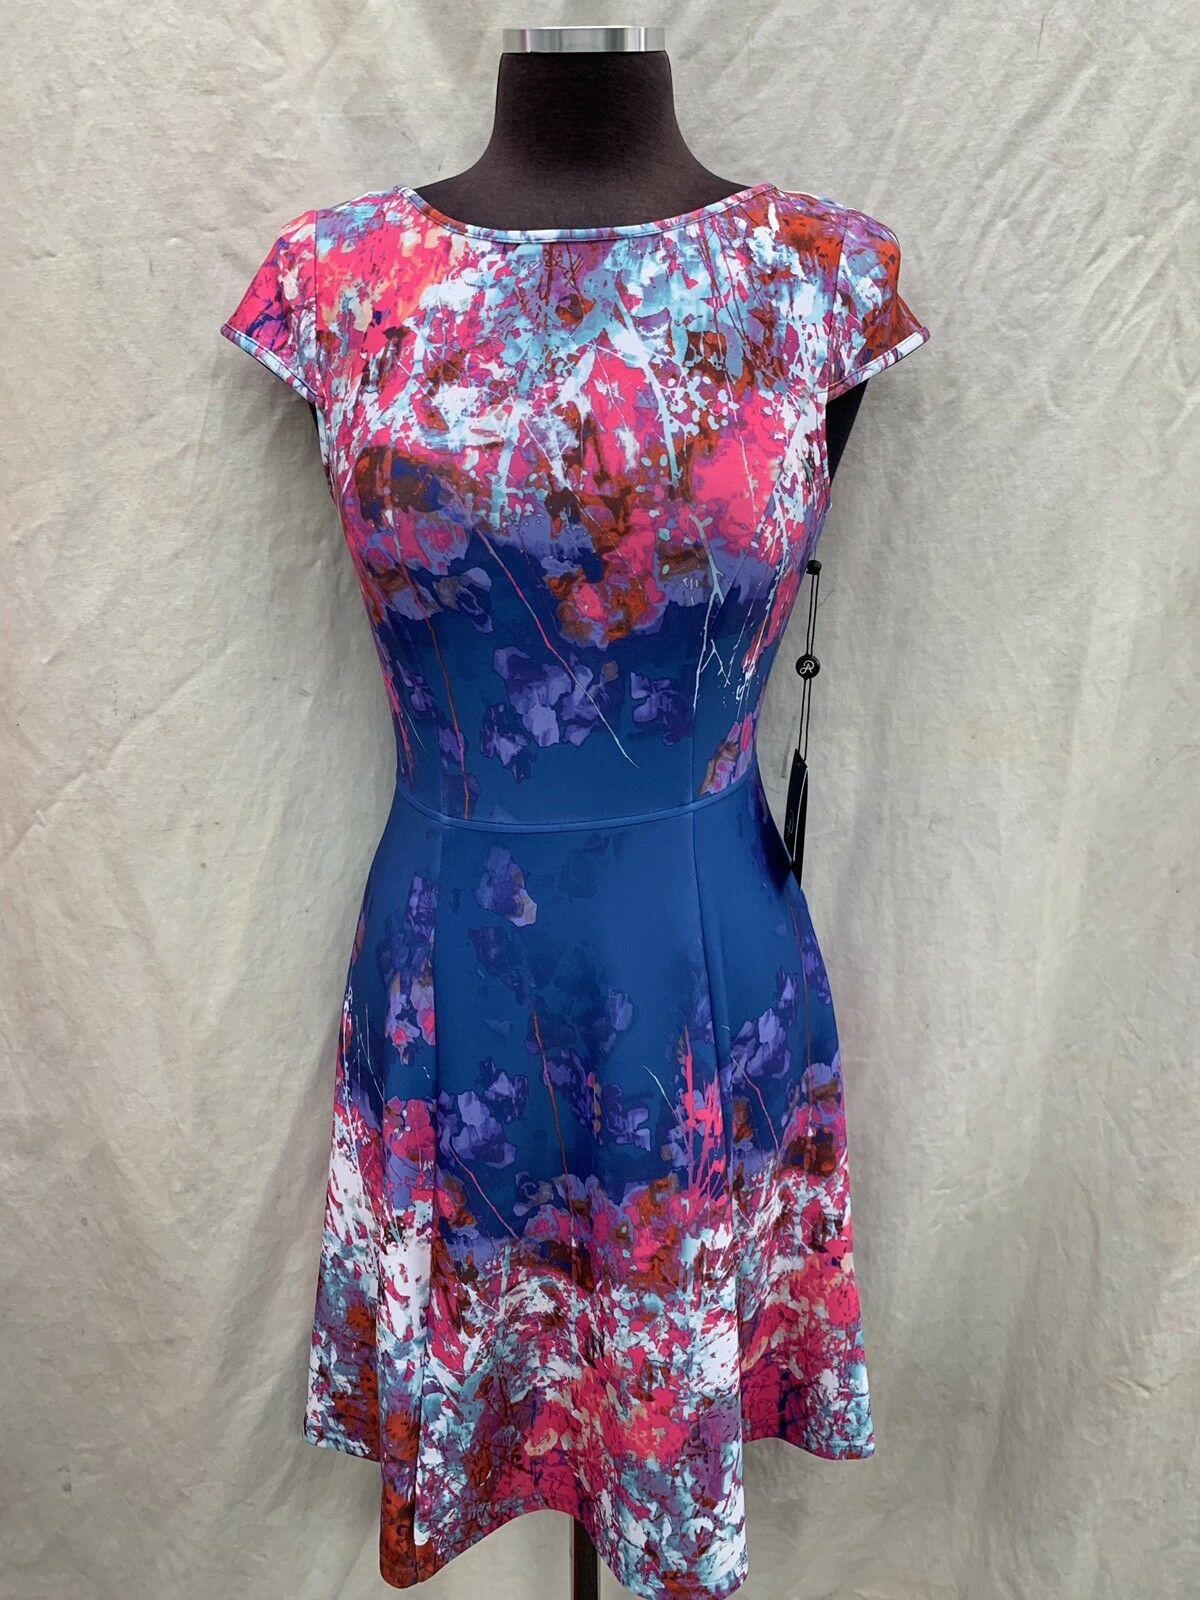 ADRIANNA PAPELL DRESS NEW WITH TAG LENGTH 40' RETAIL SIZE 12 SCUBA FABRIC